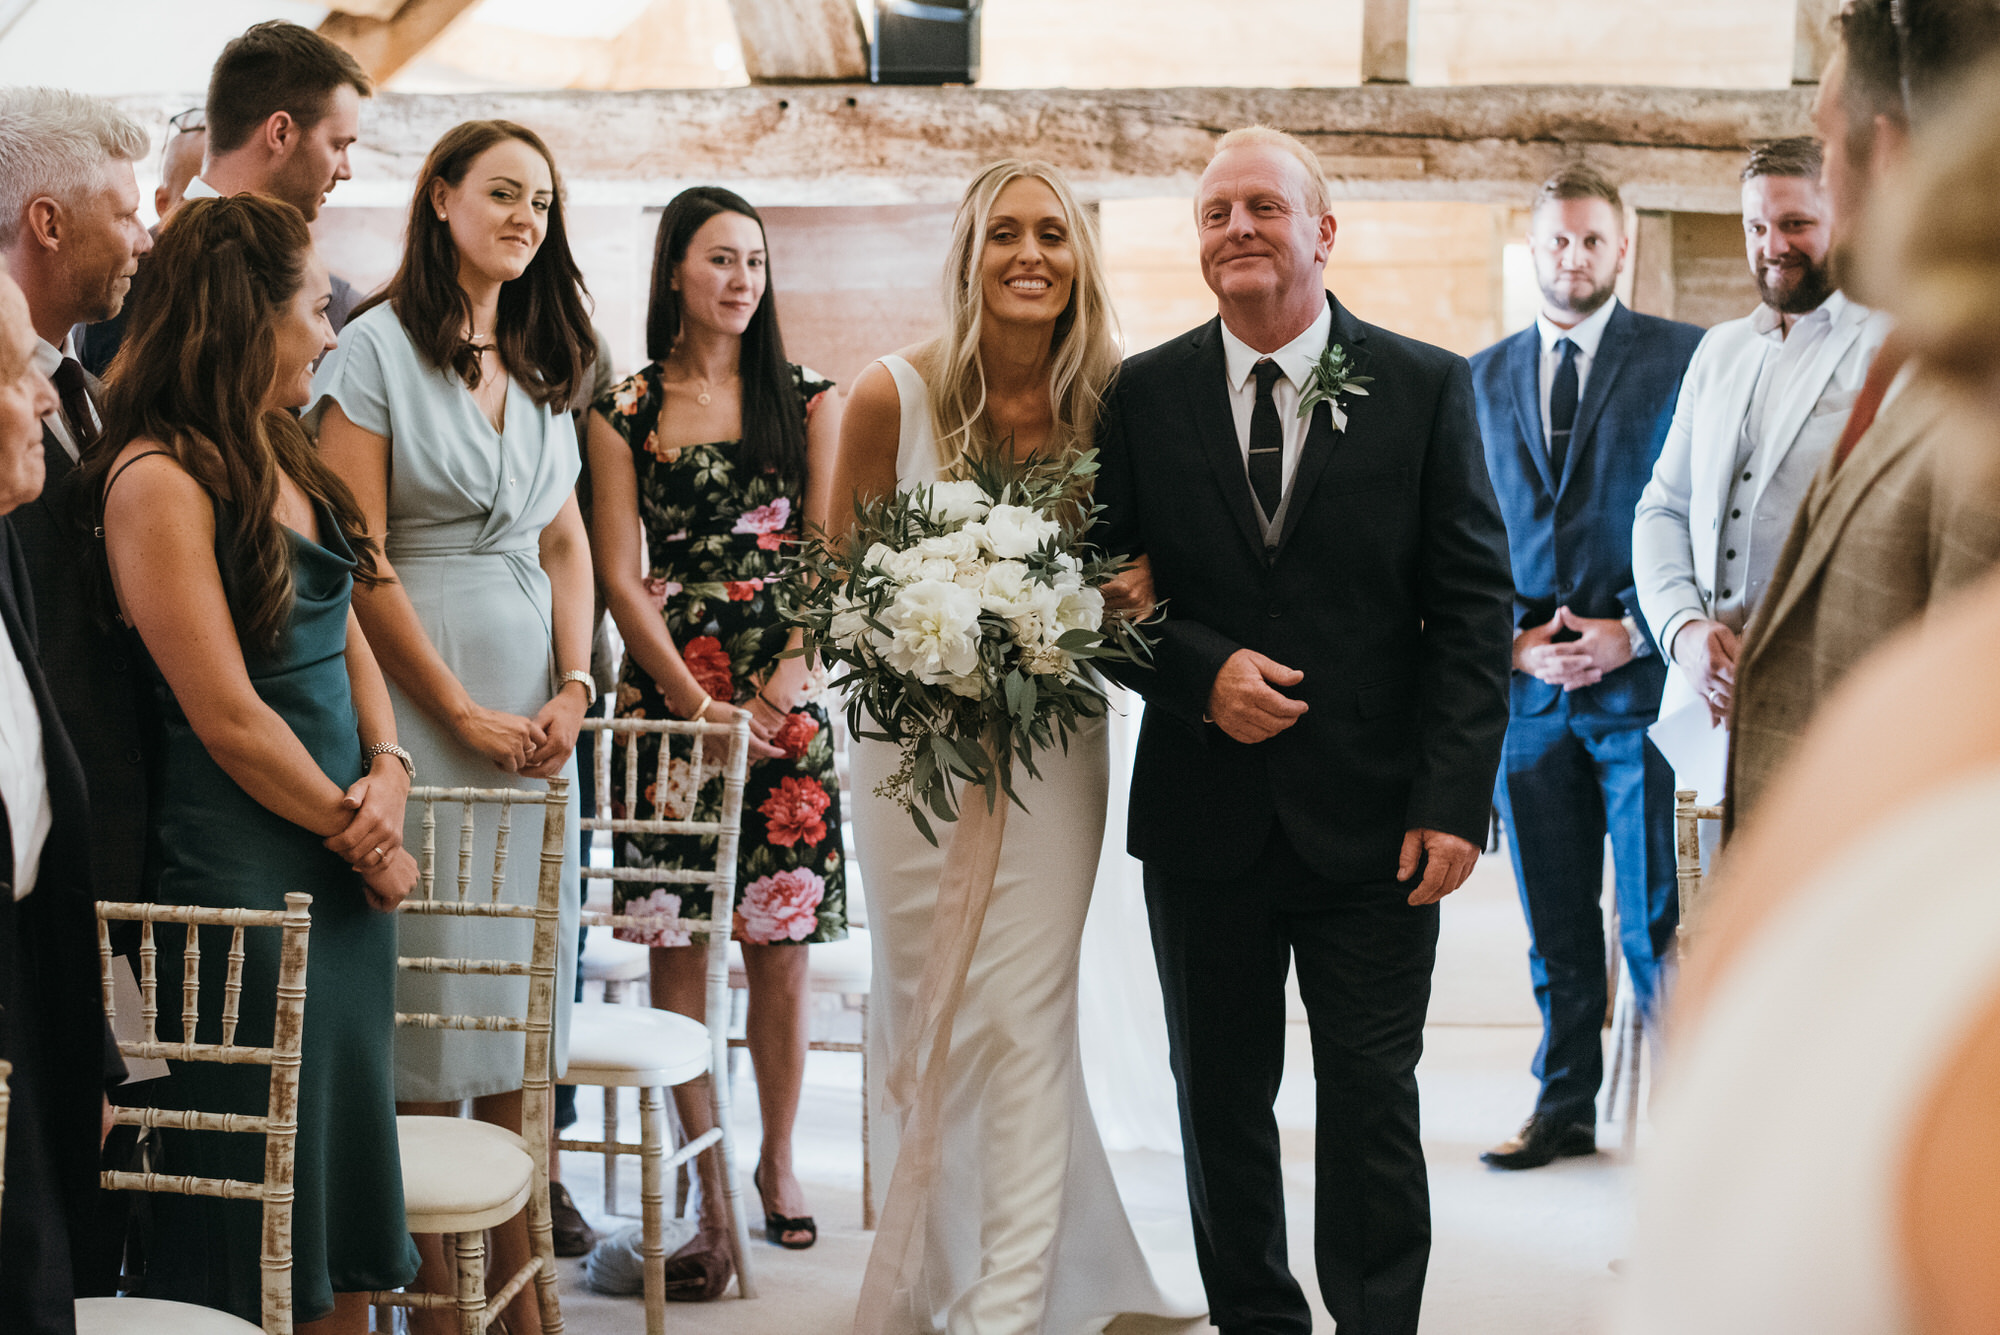 Almonry barn wedding photographer 46